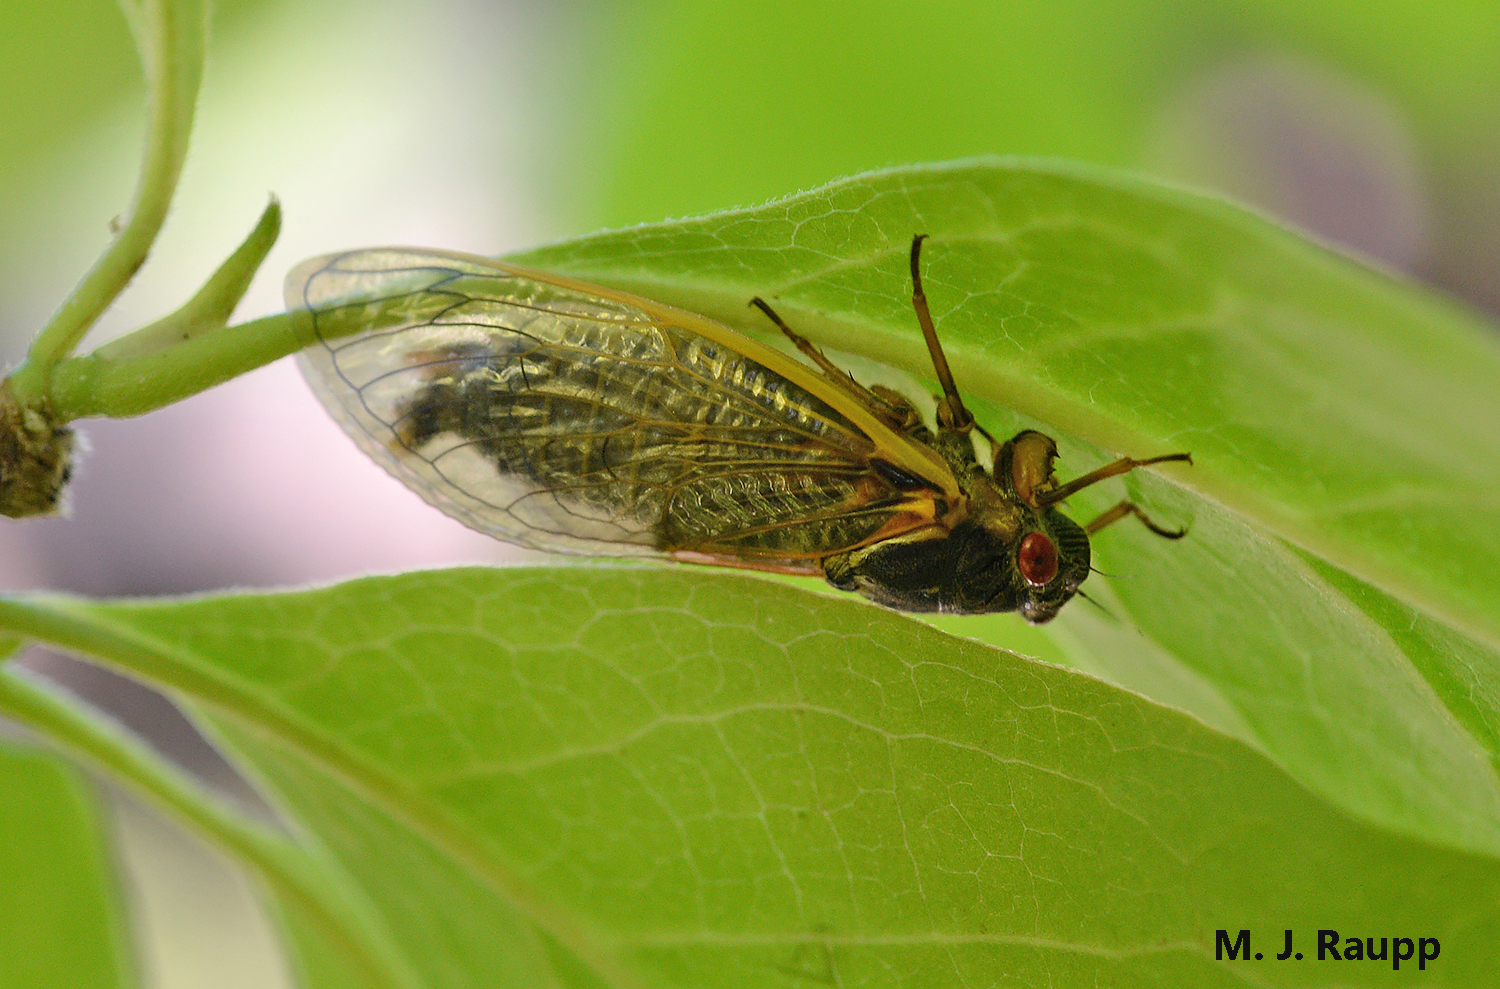 By dawn, the cicada's exoskeleton has hardened and he is ready to join the big boy band assembling in the treetops.